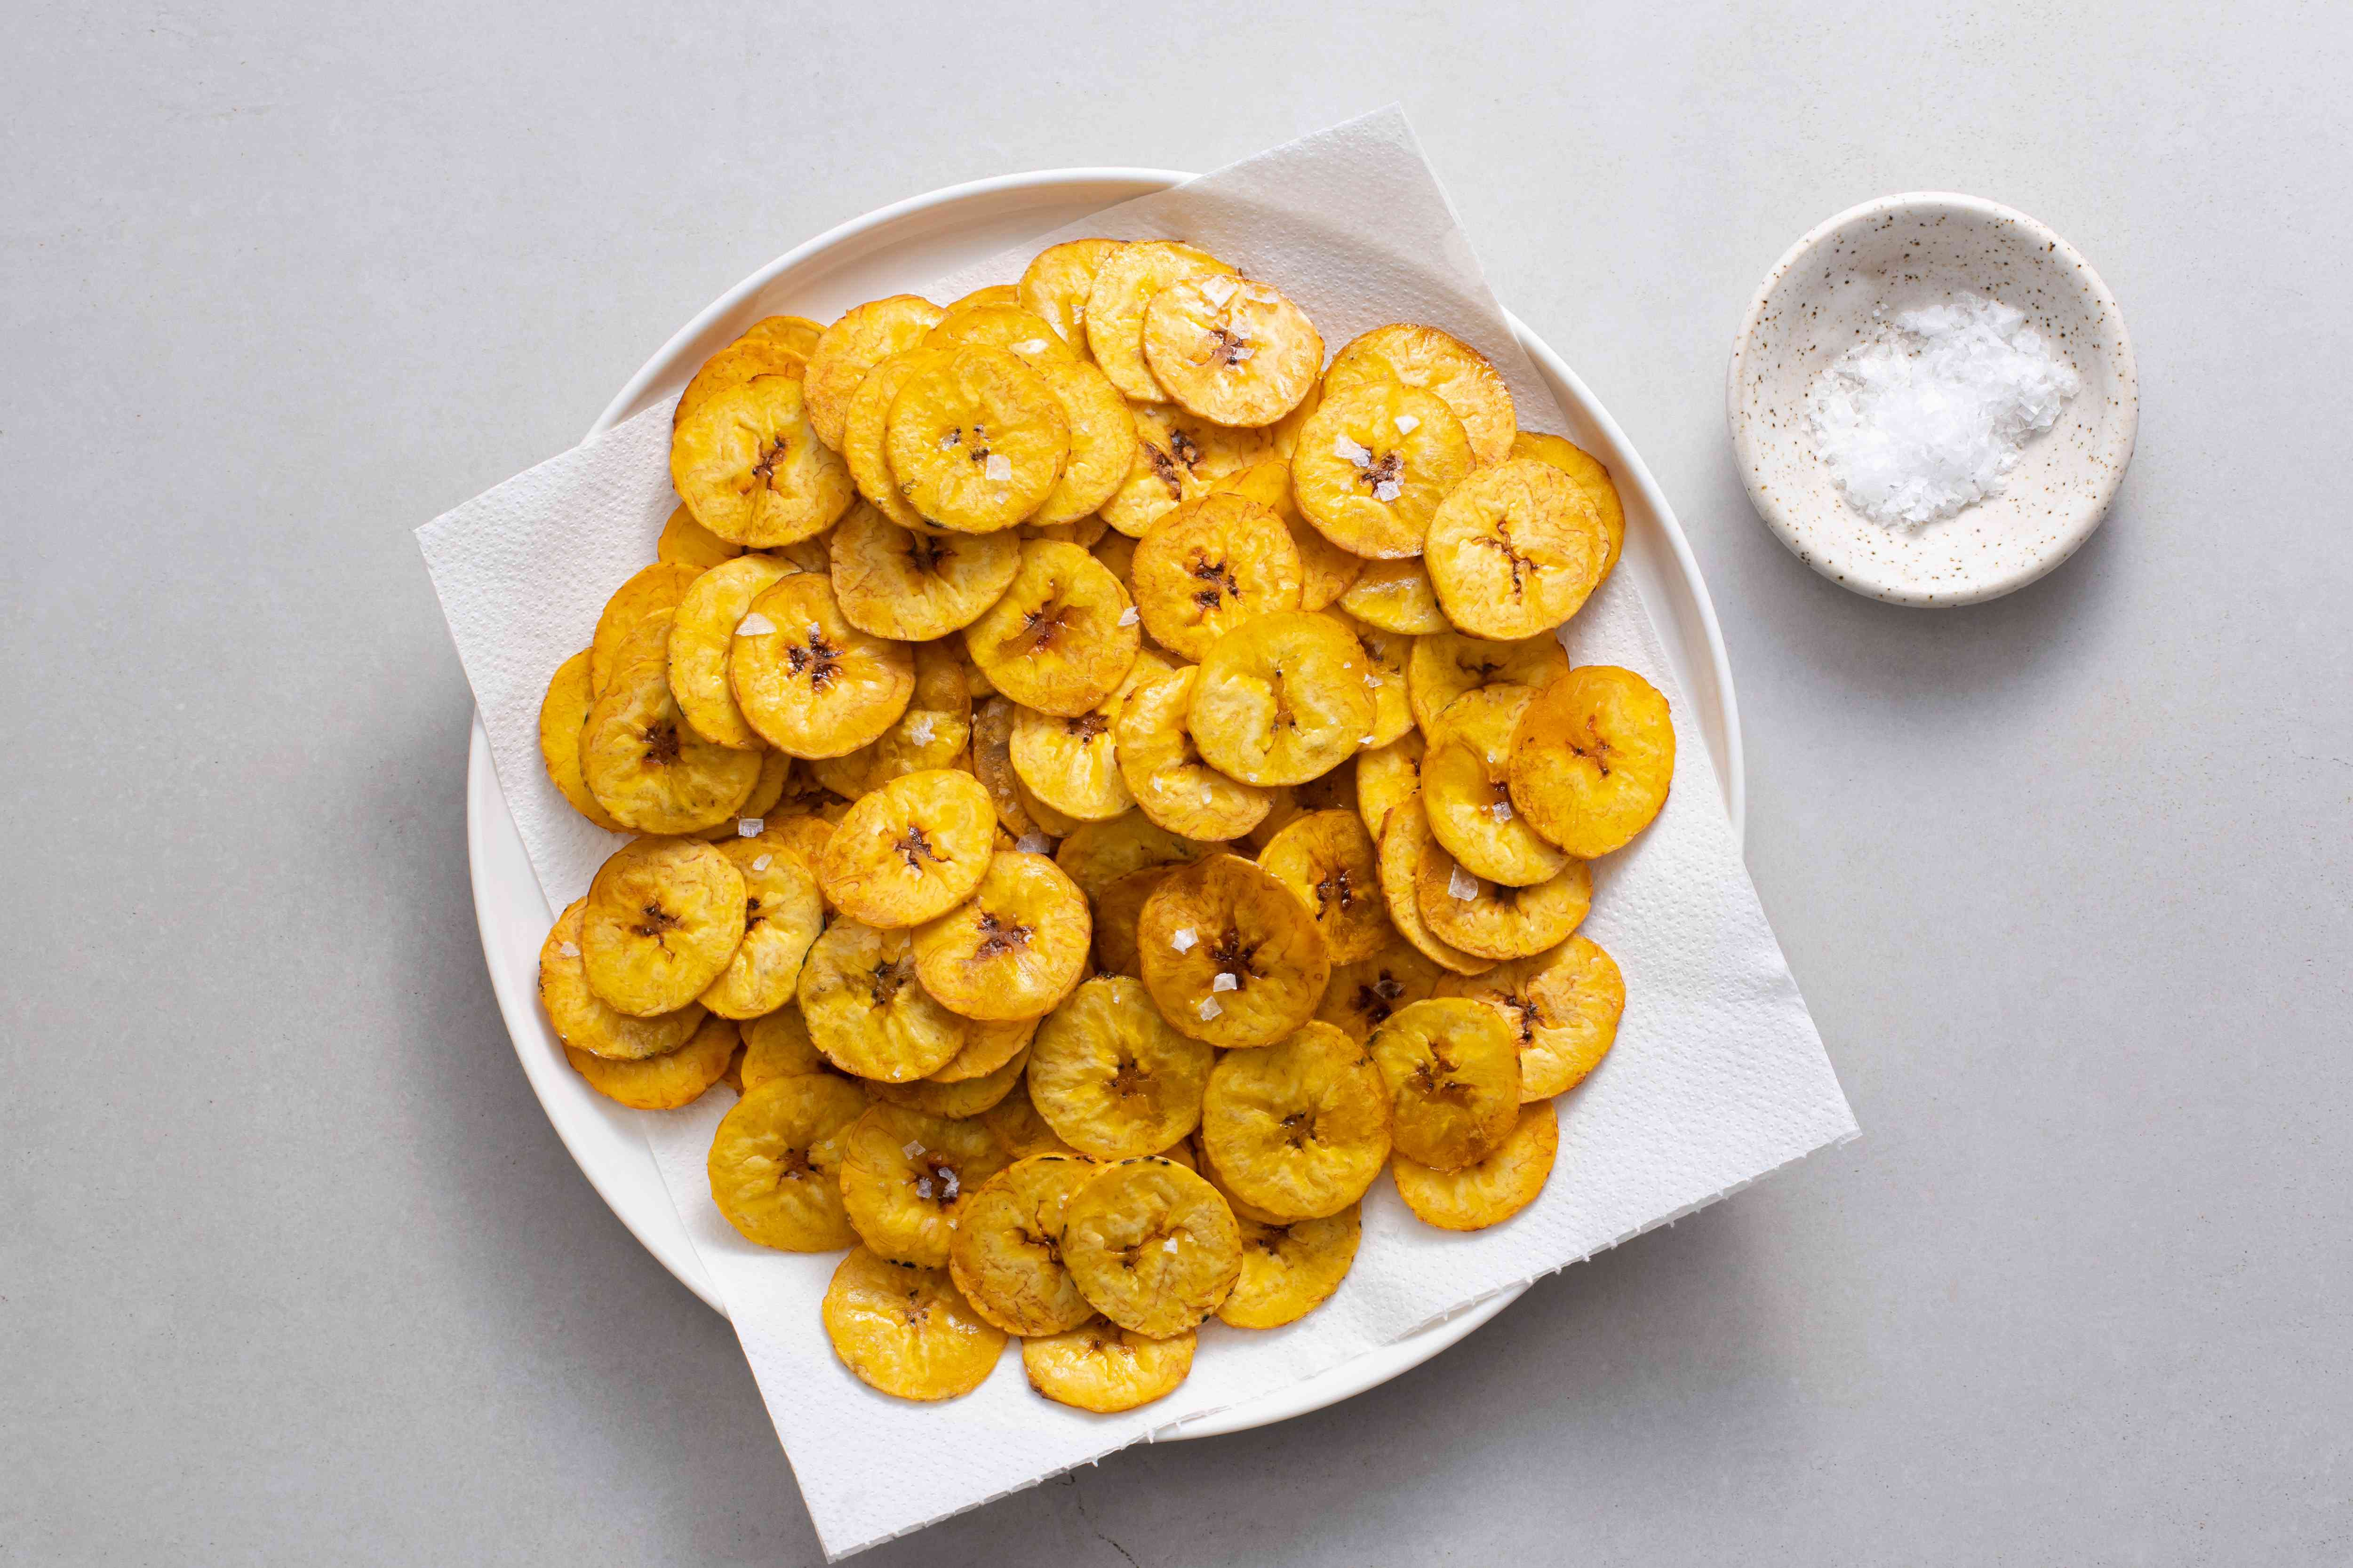 Fried Plantain Chips (Chifles)